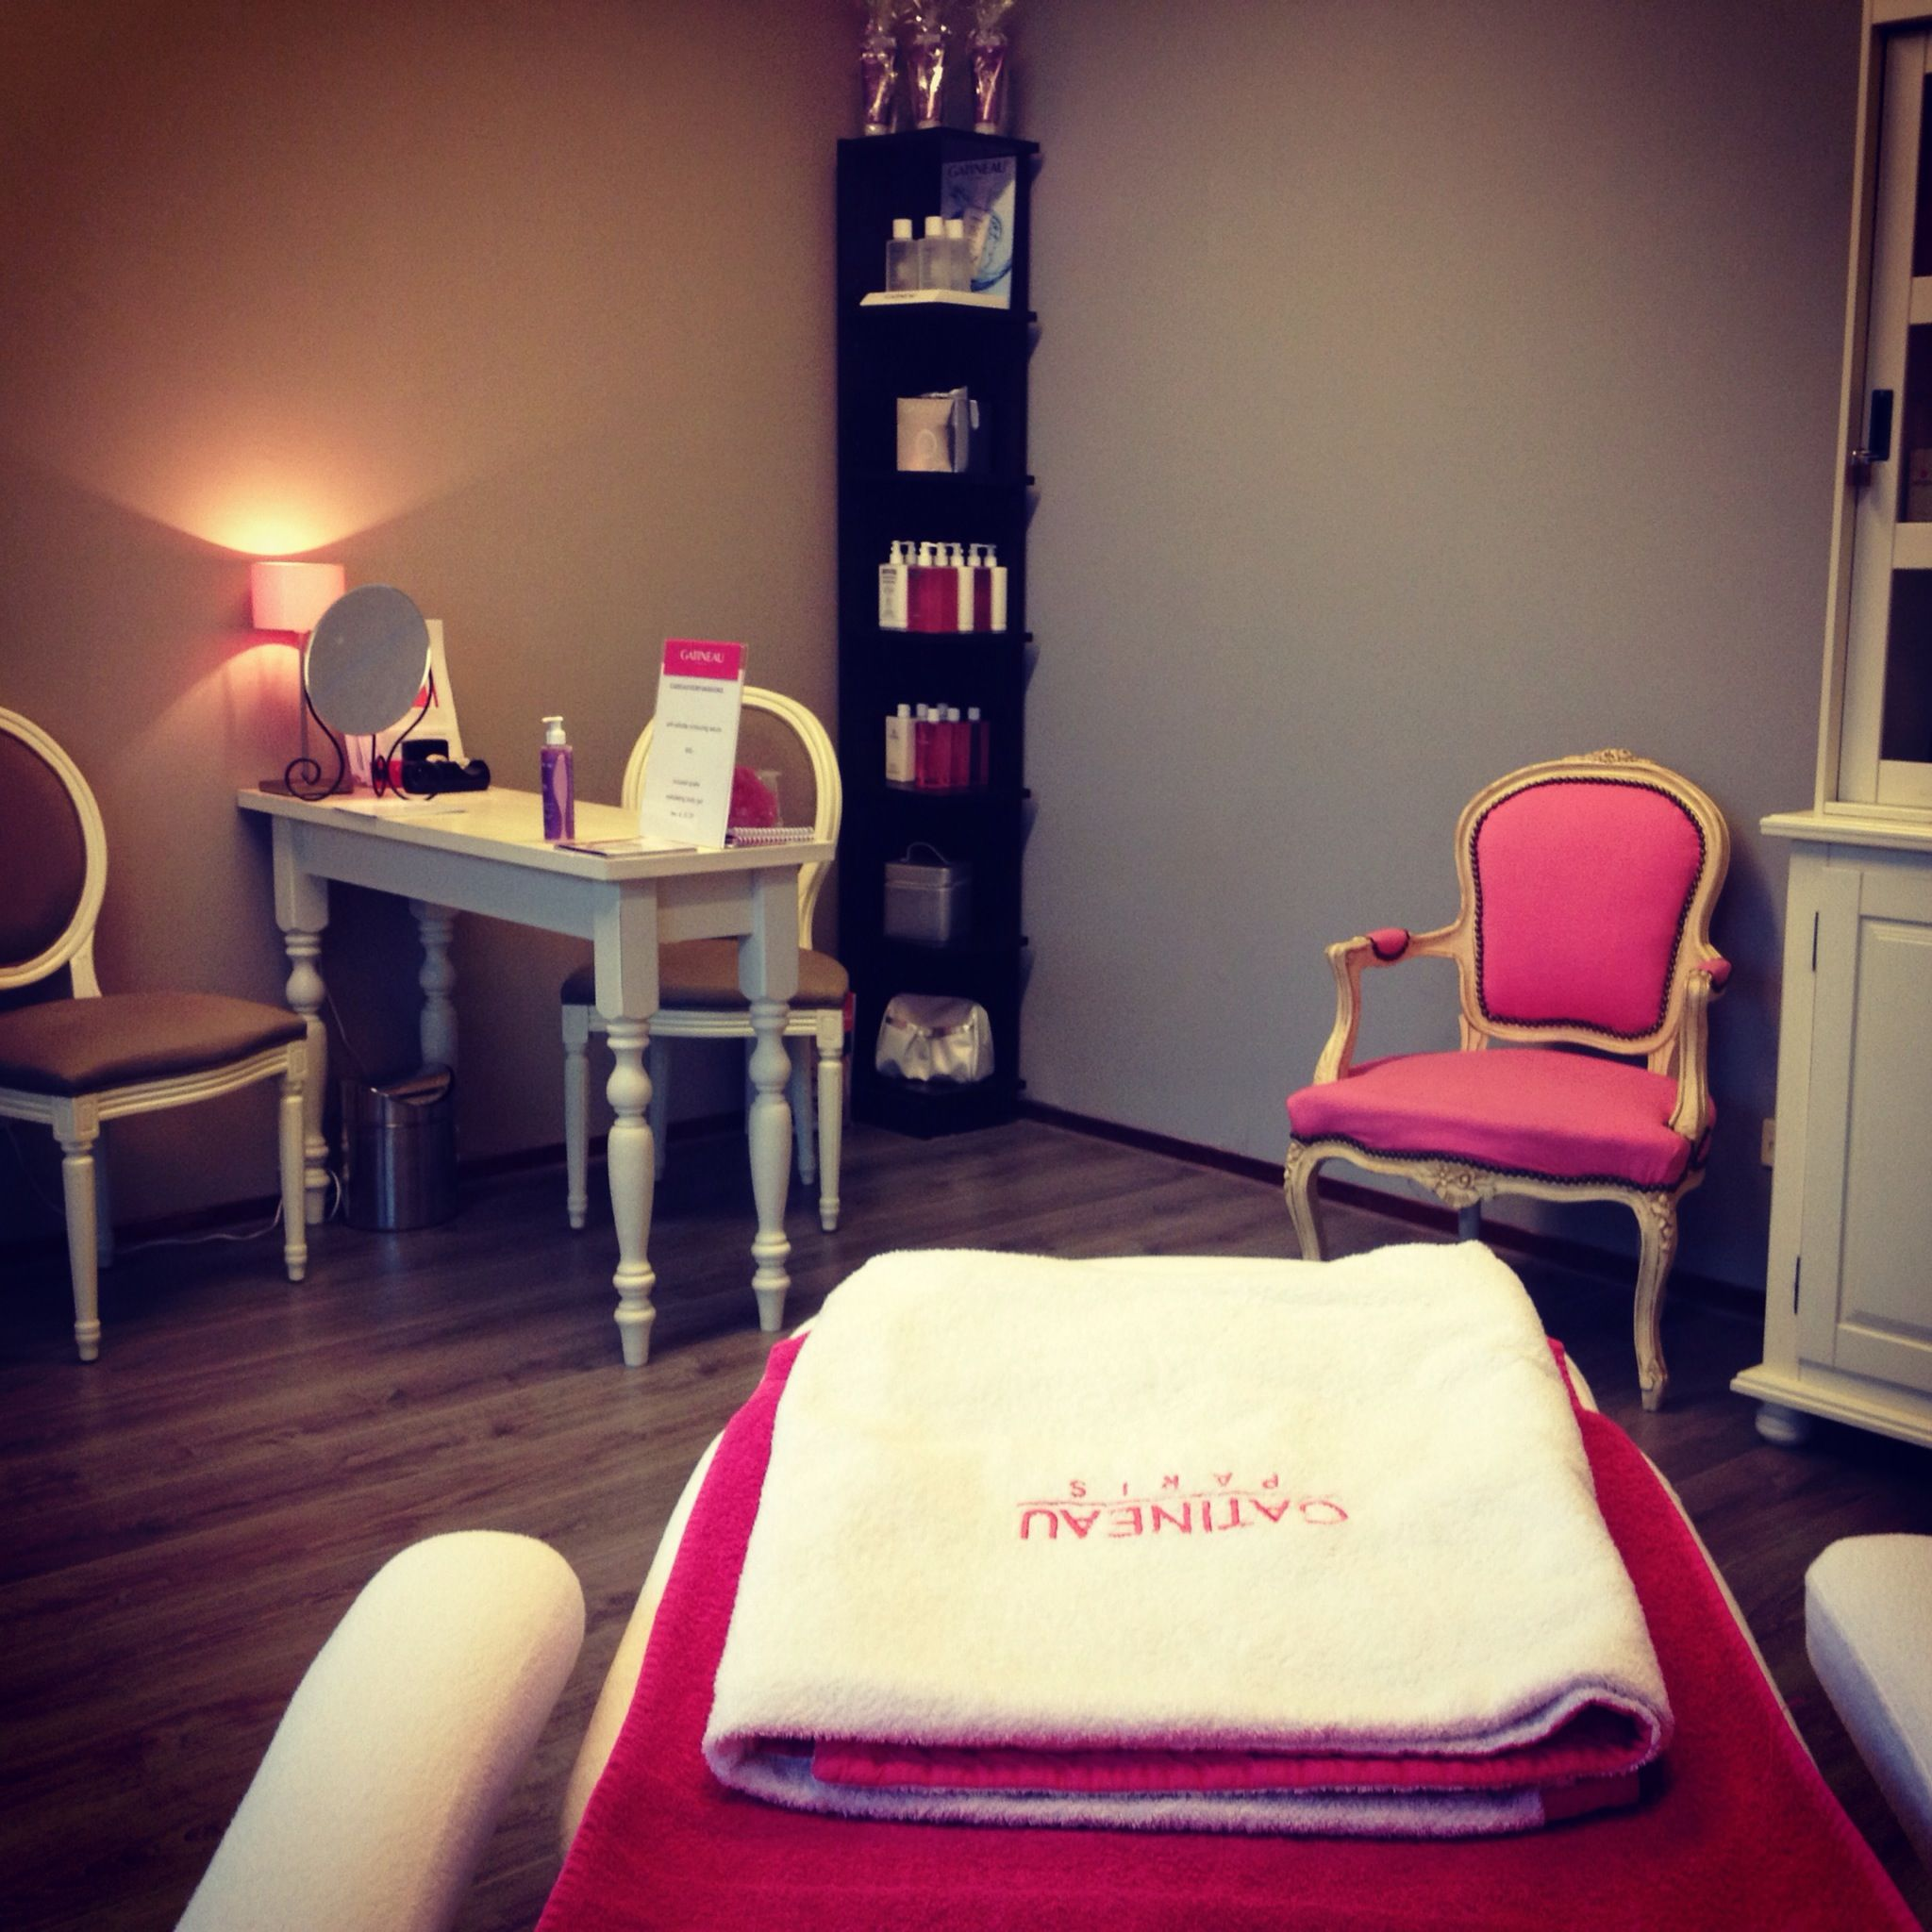 I will have a cute chabby chic salon like this one day ideas